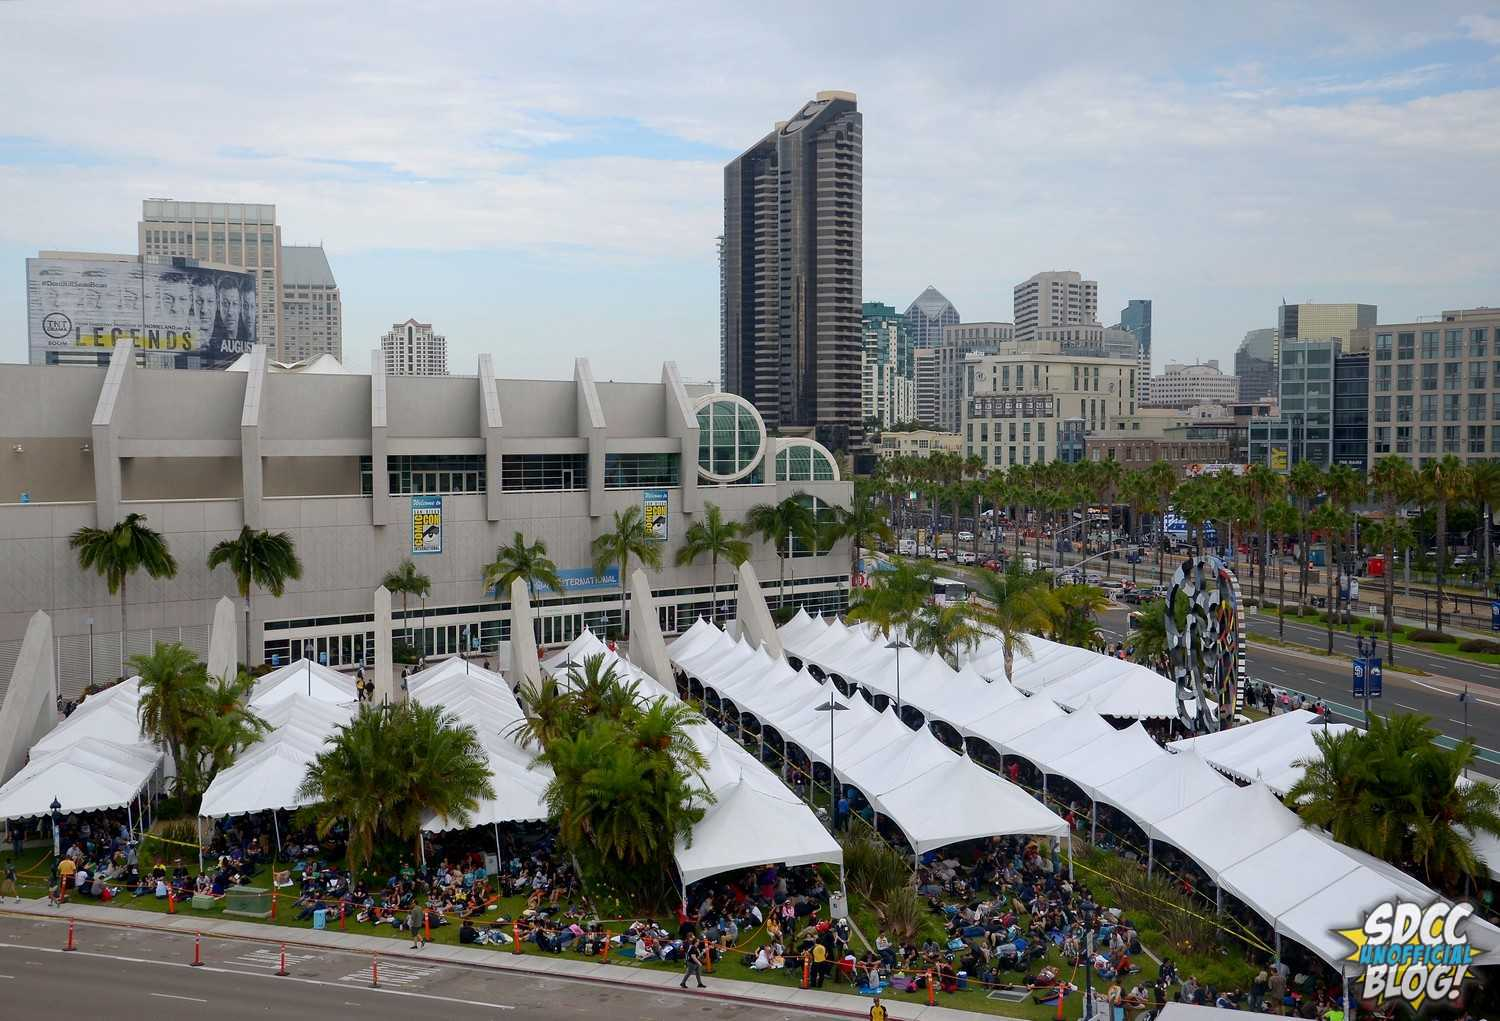 Hall H Line Tents Convention Center Hotels - City View